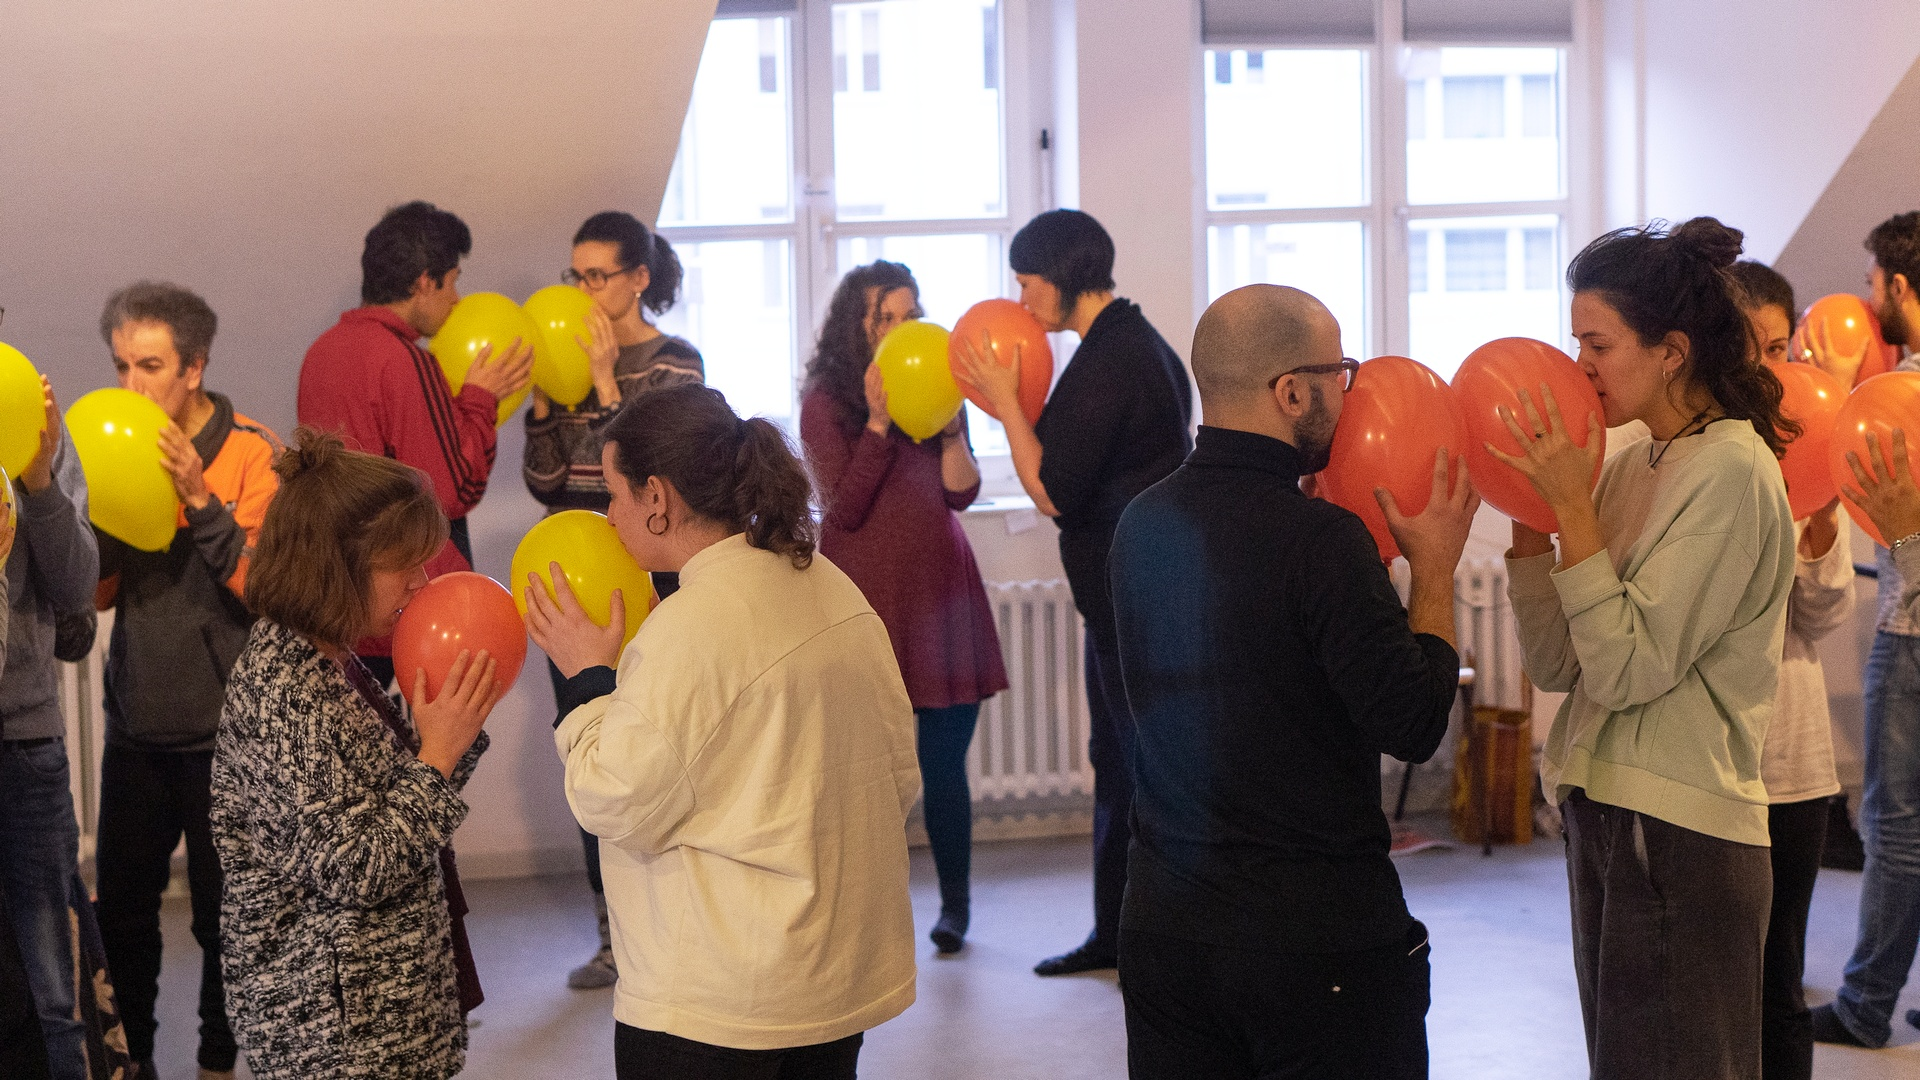 People doing a group exercise with balloons